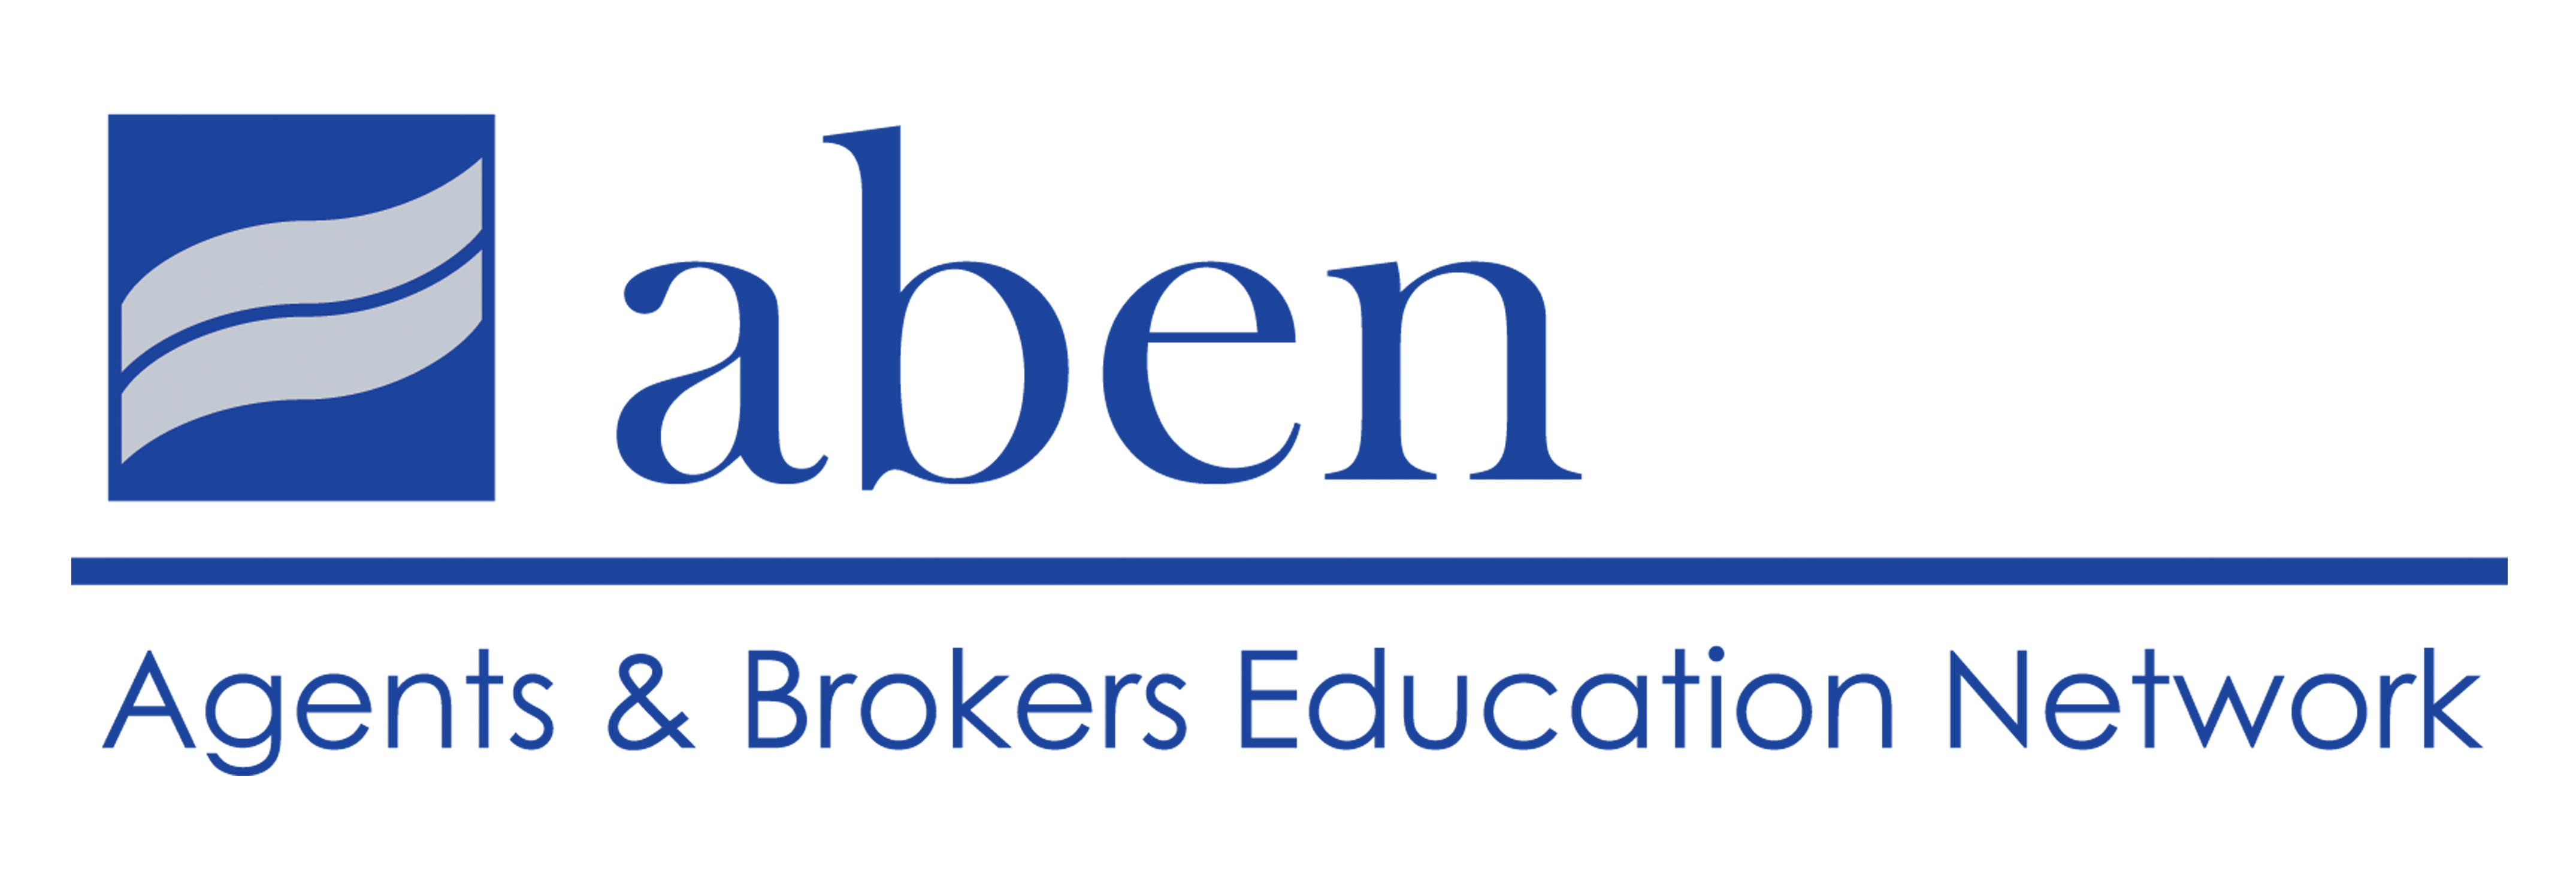 aben_logo_hi-res-color.jpg